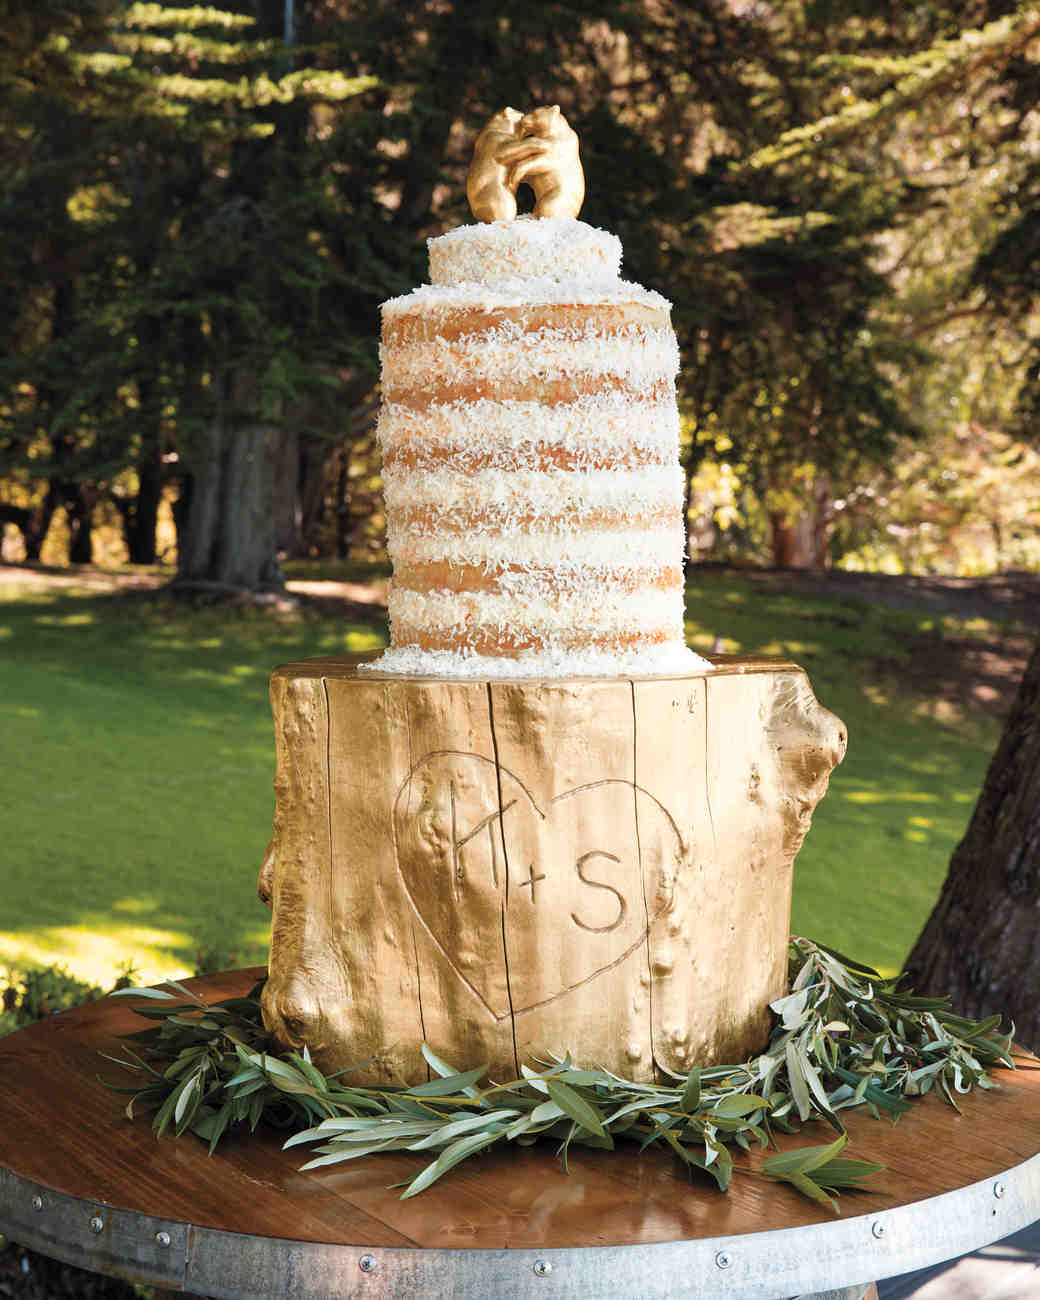 Naked Coconut Cake with Gold Accents